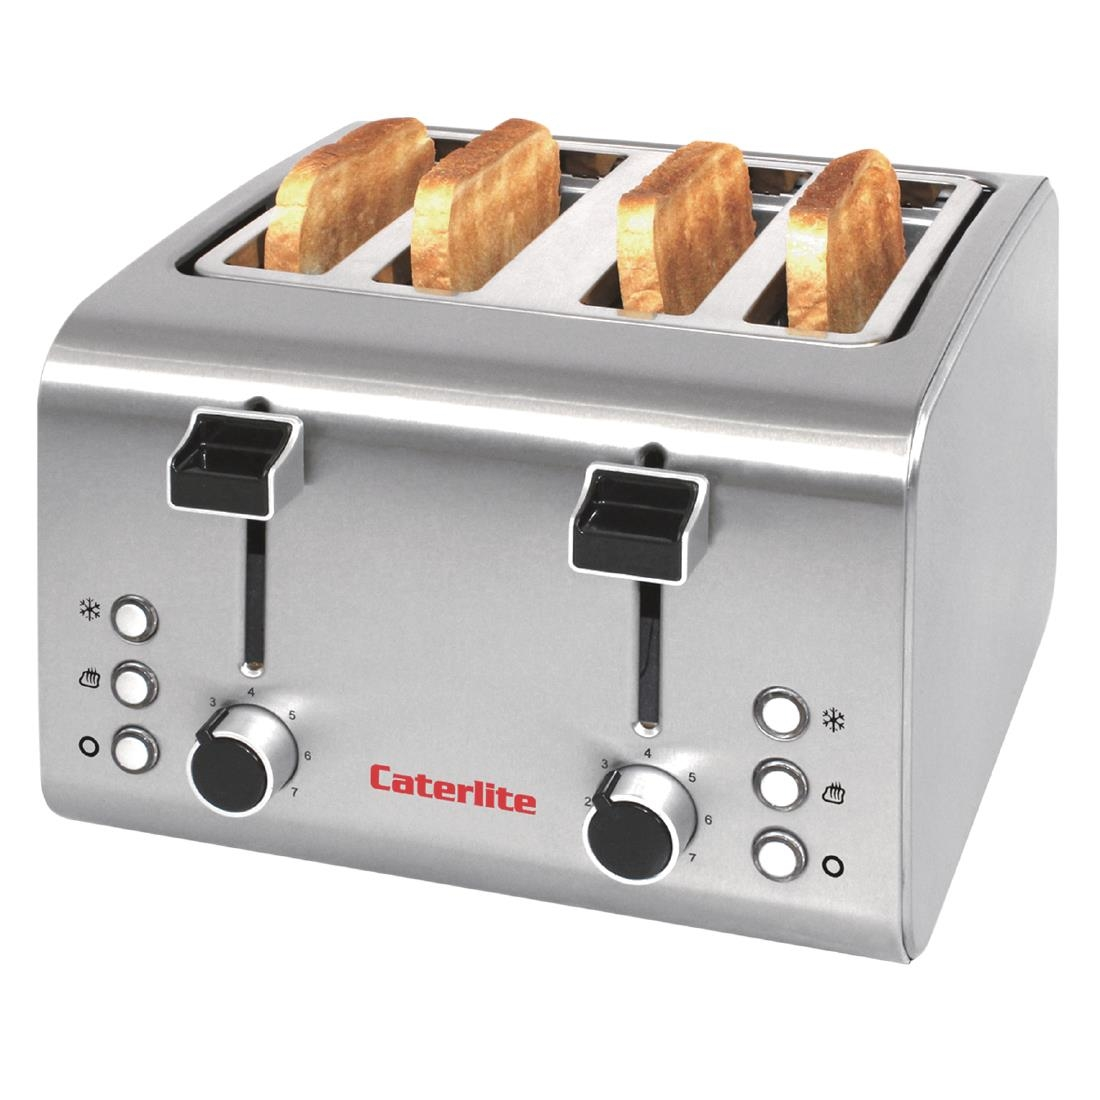 Image of Caterlite 4 Slot Stainless Steel Toaster